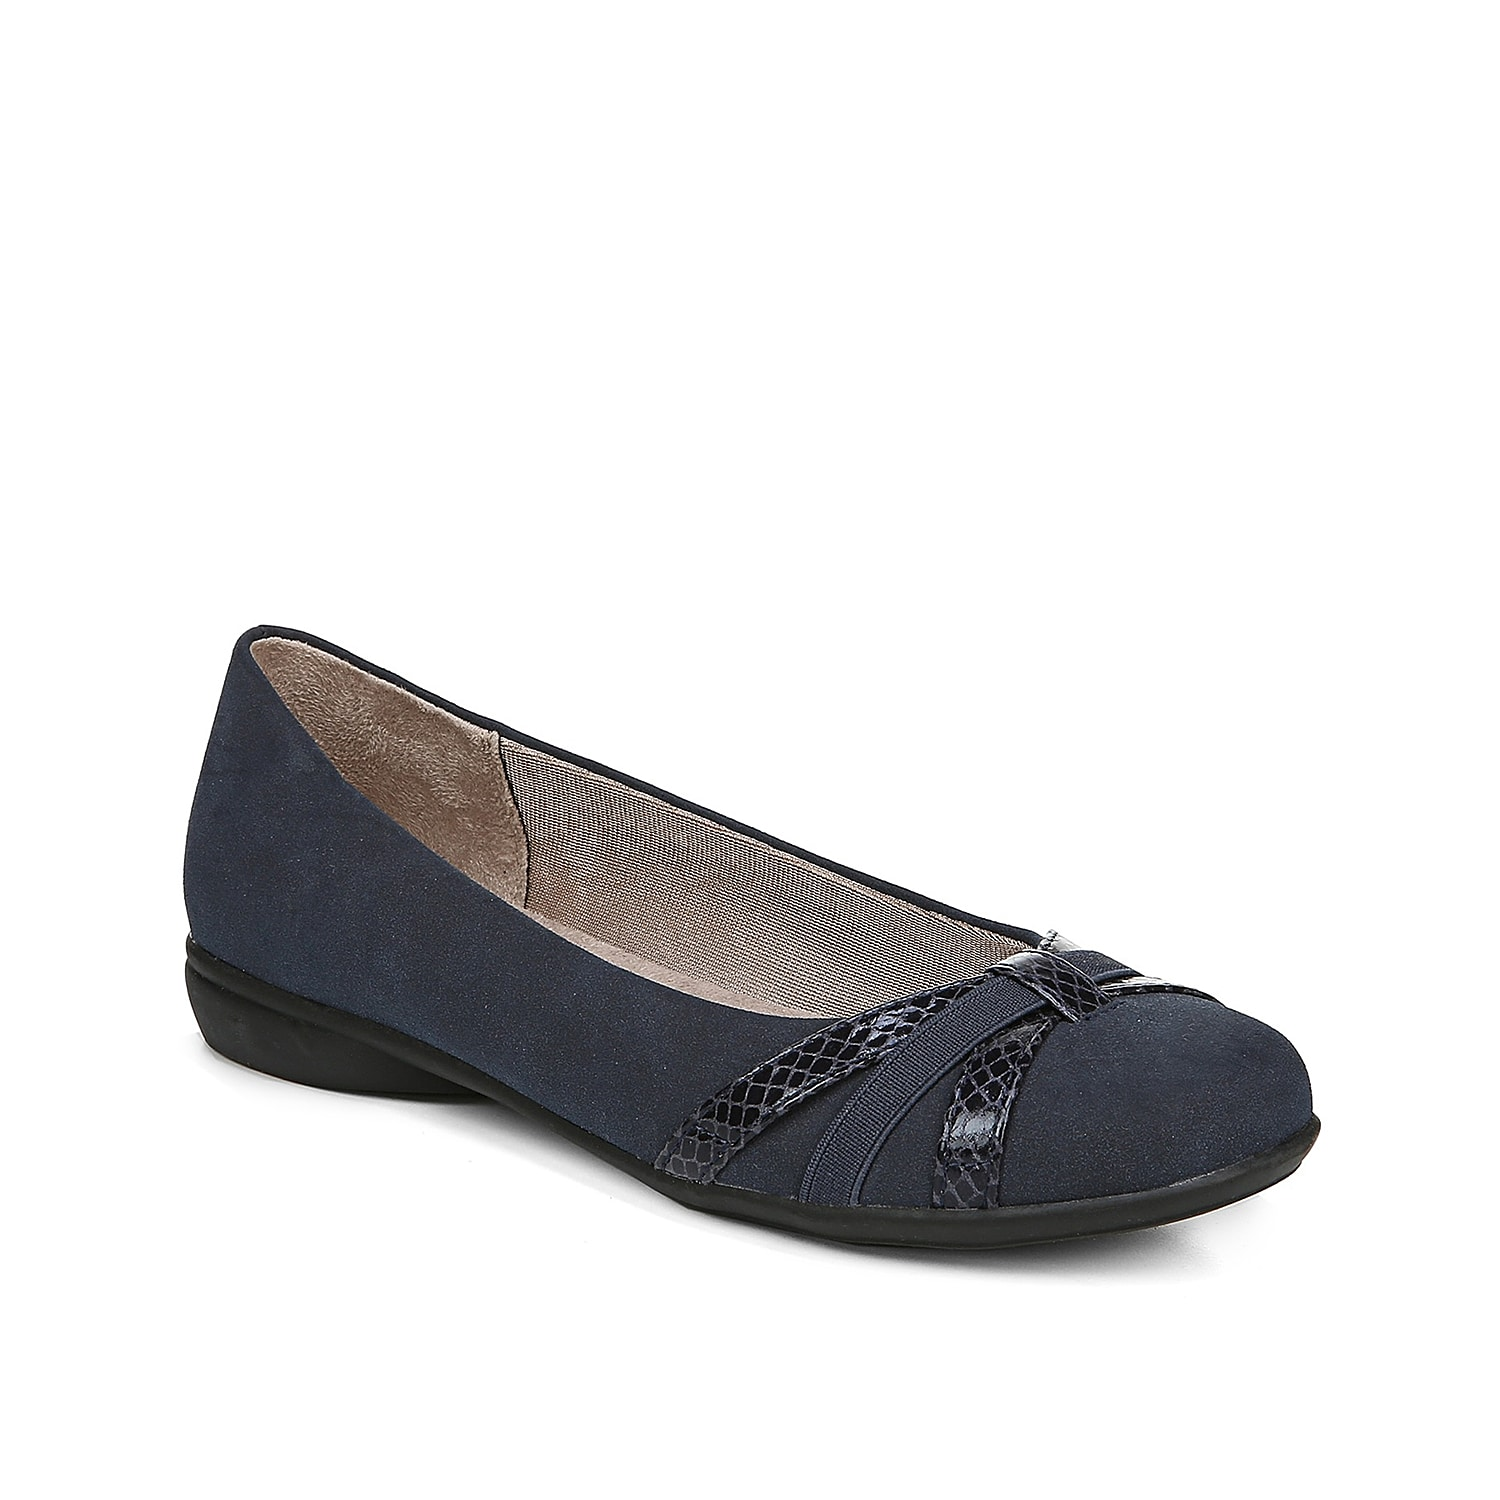 The Abigail flat from LifeStride will be the perfect addition to your work or weekend attire. These slip-ons feature a classic silhouette and crisscross straps for extra enticement.